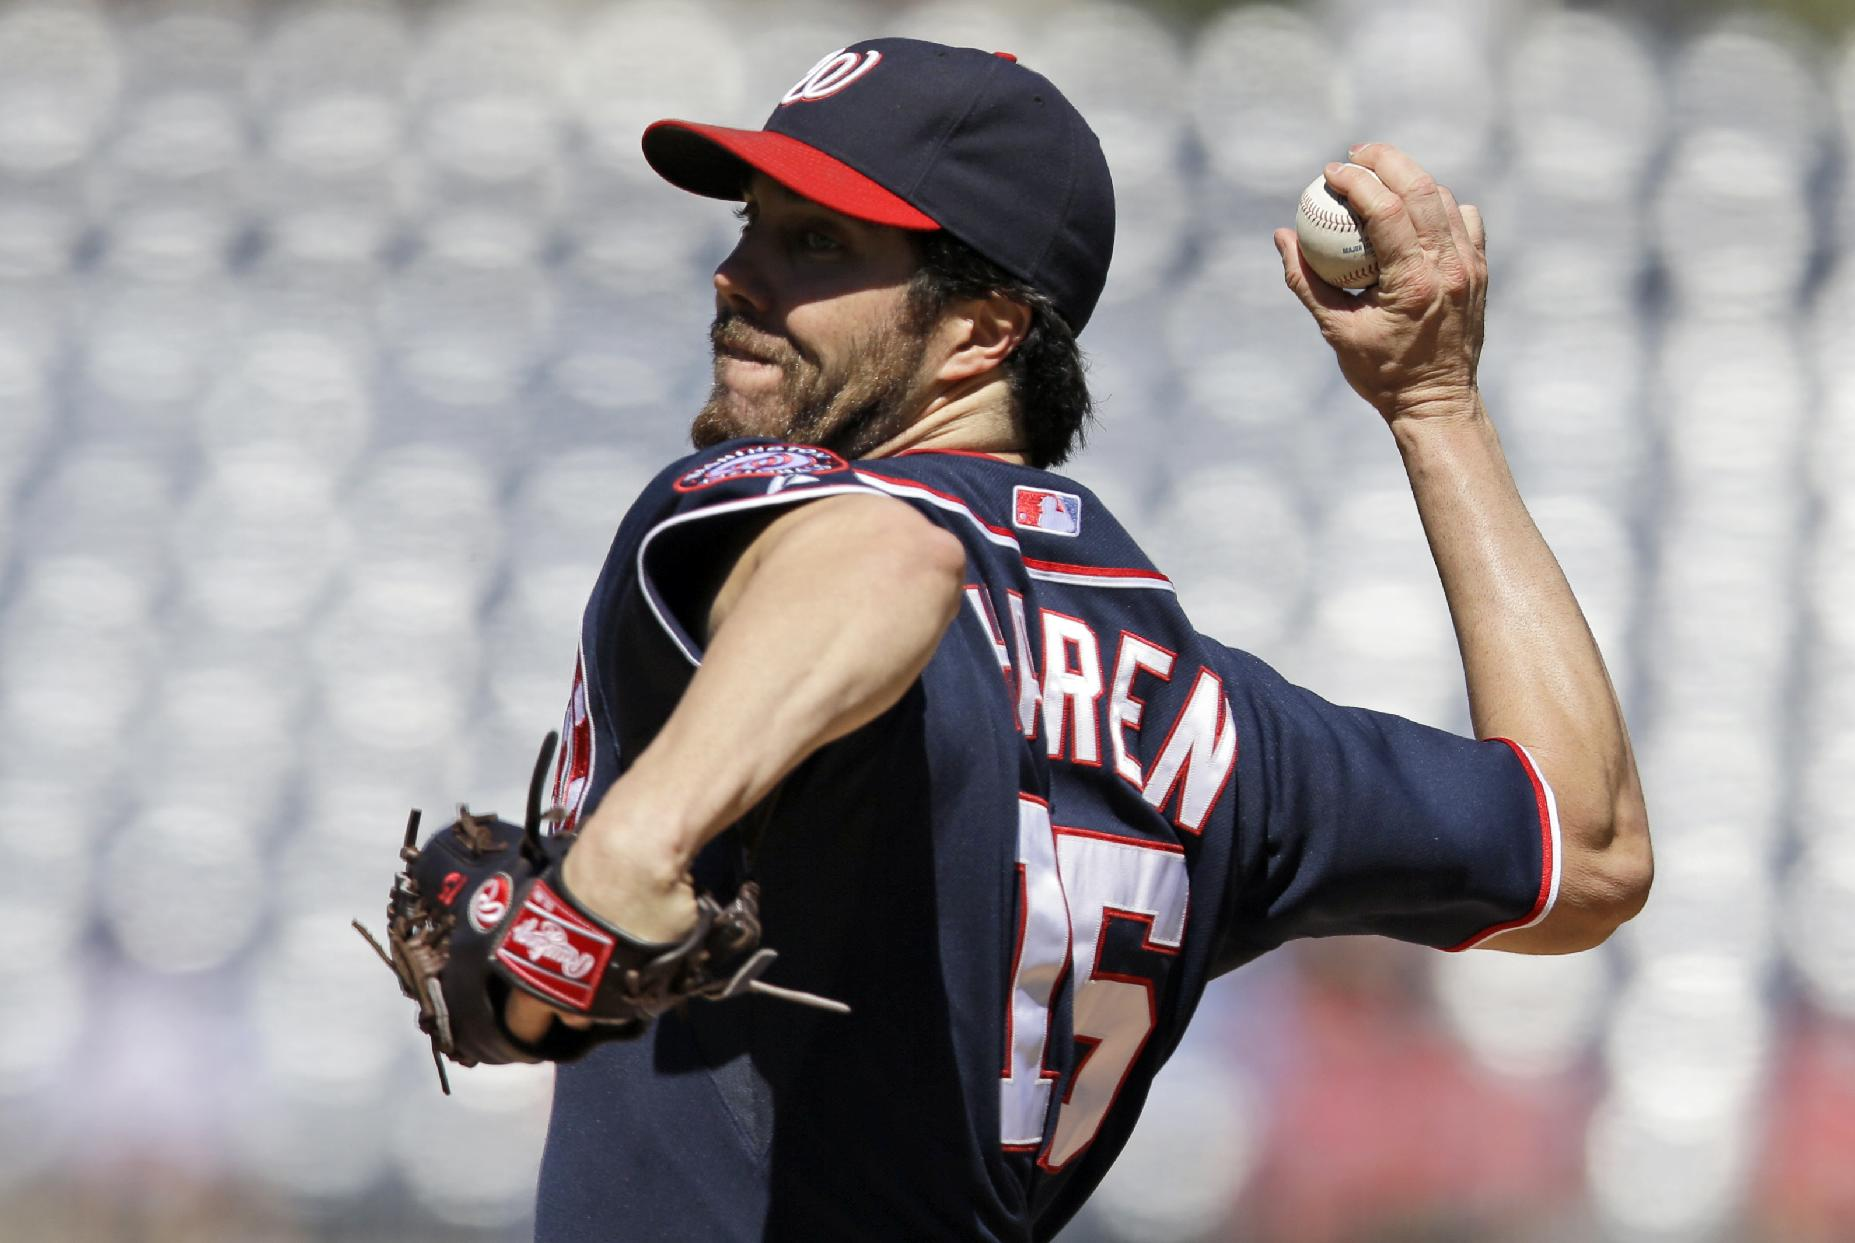 Washington Nationals starting pitcher Dan Haren throws  against the Atlanta Braves in the first inning of the first baseball game of a doubleheader at Nationals Park Tuesday, Sept. 17, 2013, in Washington